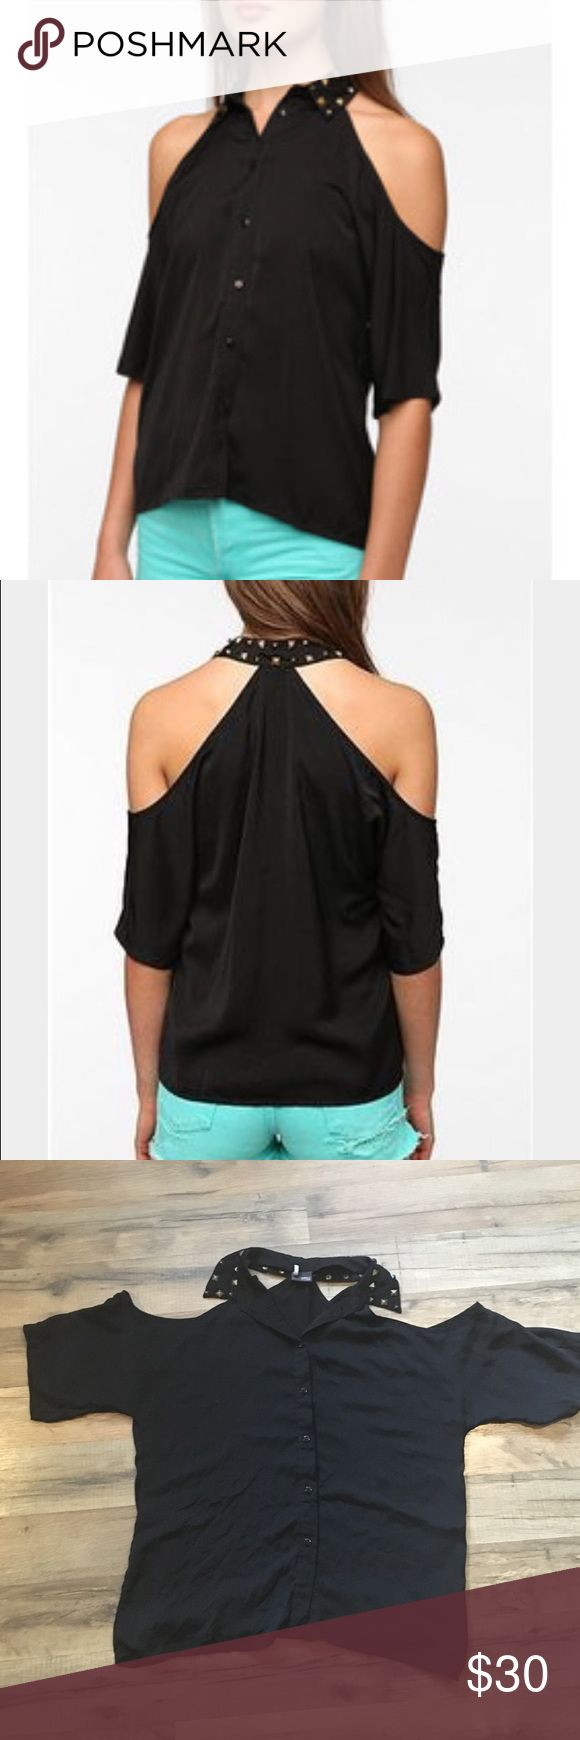 Urban Outfitters Studded Collar Cold-Shoulder Top Sparkle & Fade top by urban outfitters. Black button down top with shoulders cut out and studded collar. Sparkle & Fade Tops Button Down Shirts